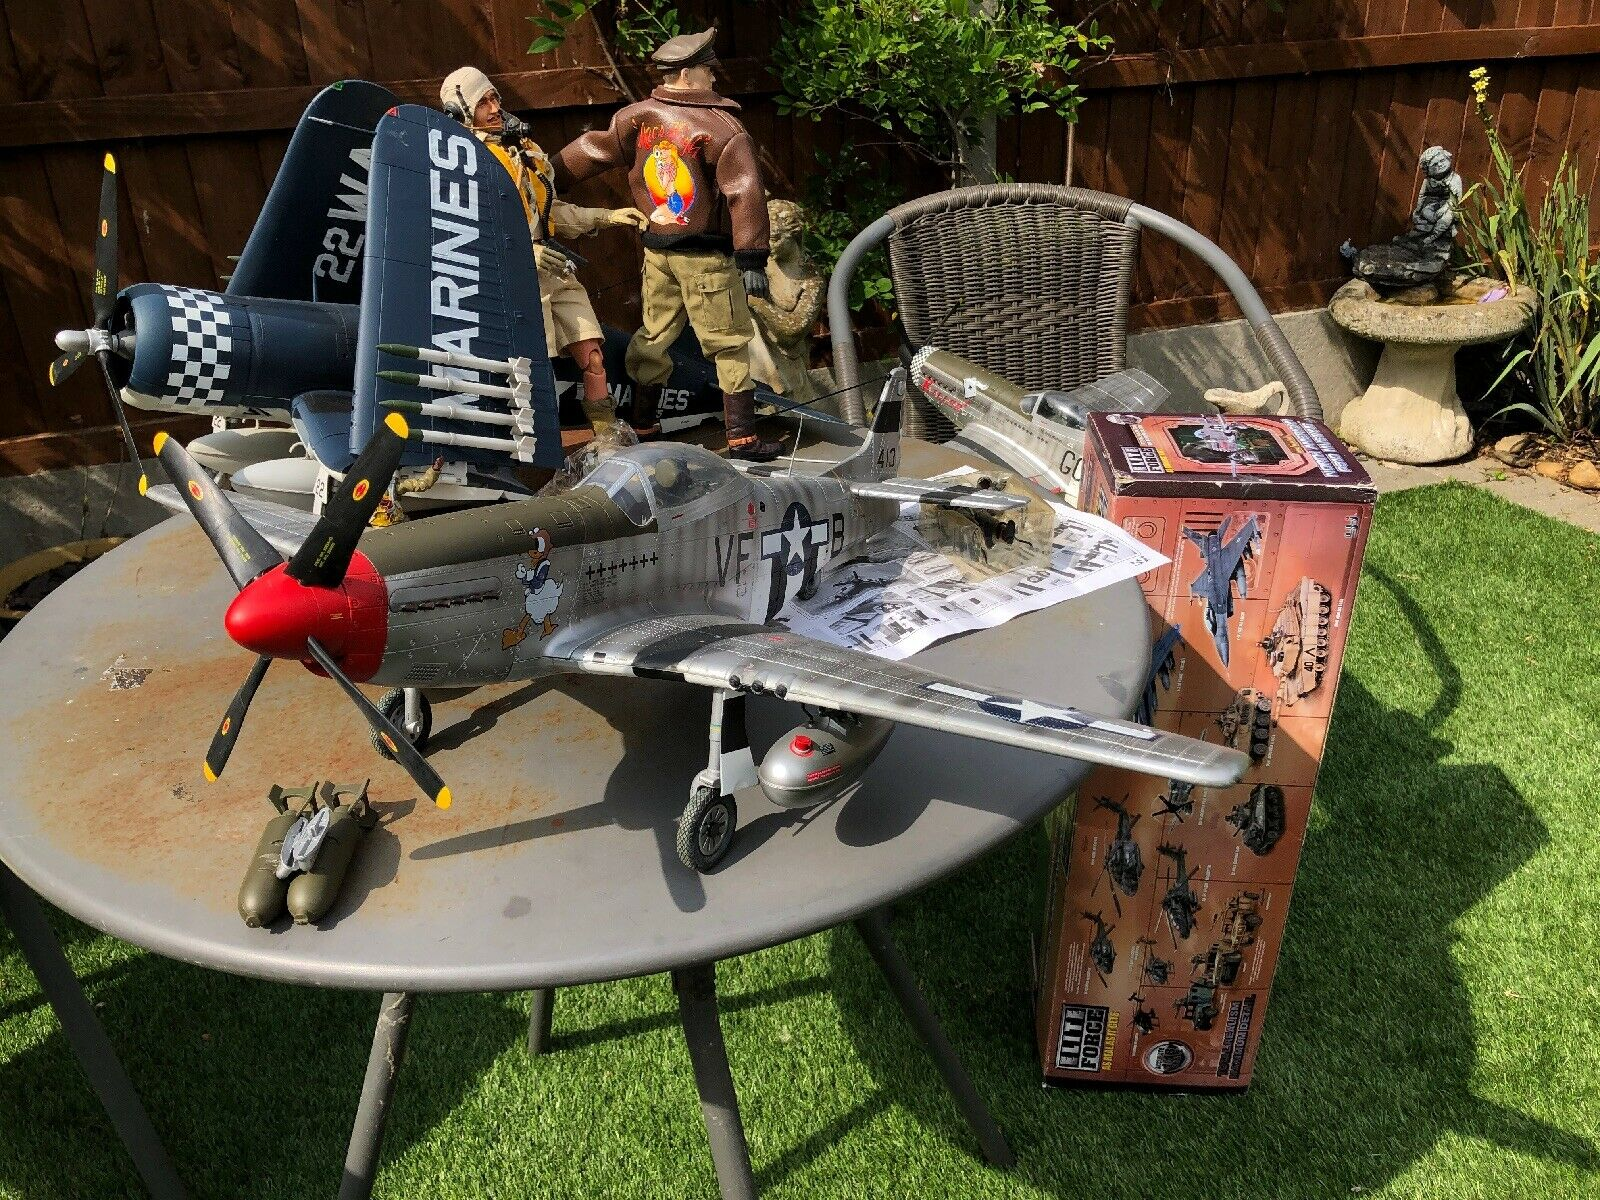 BBi Elite Force 1 18 P-51 Mustang WW2 Fighter Plane